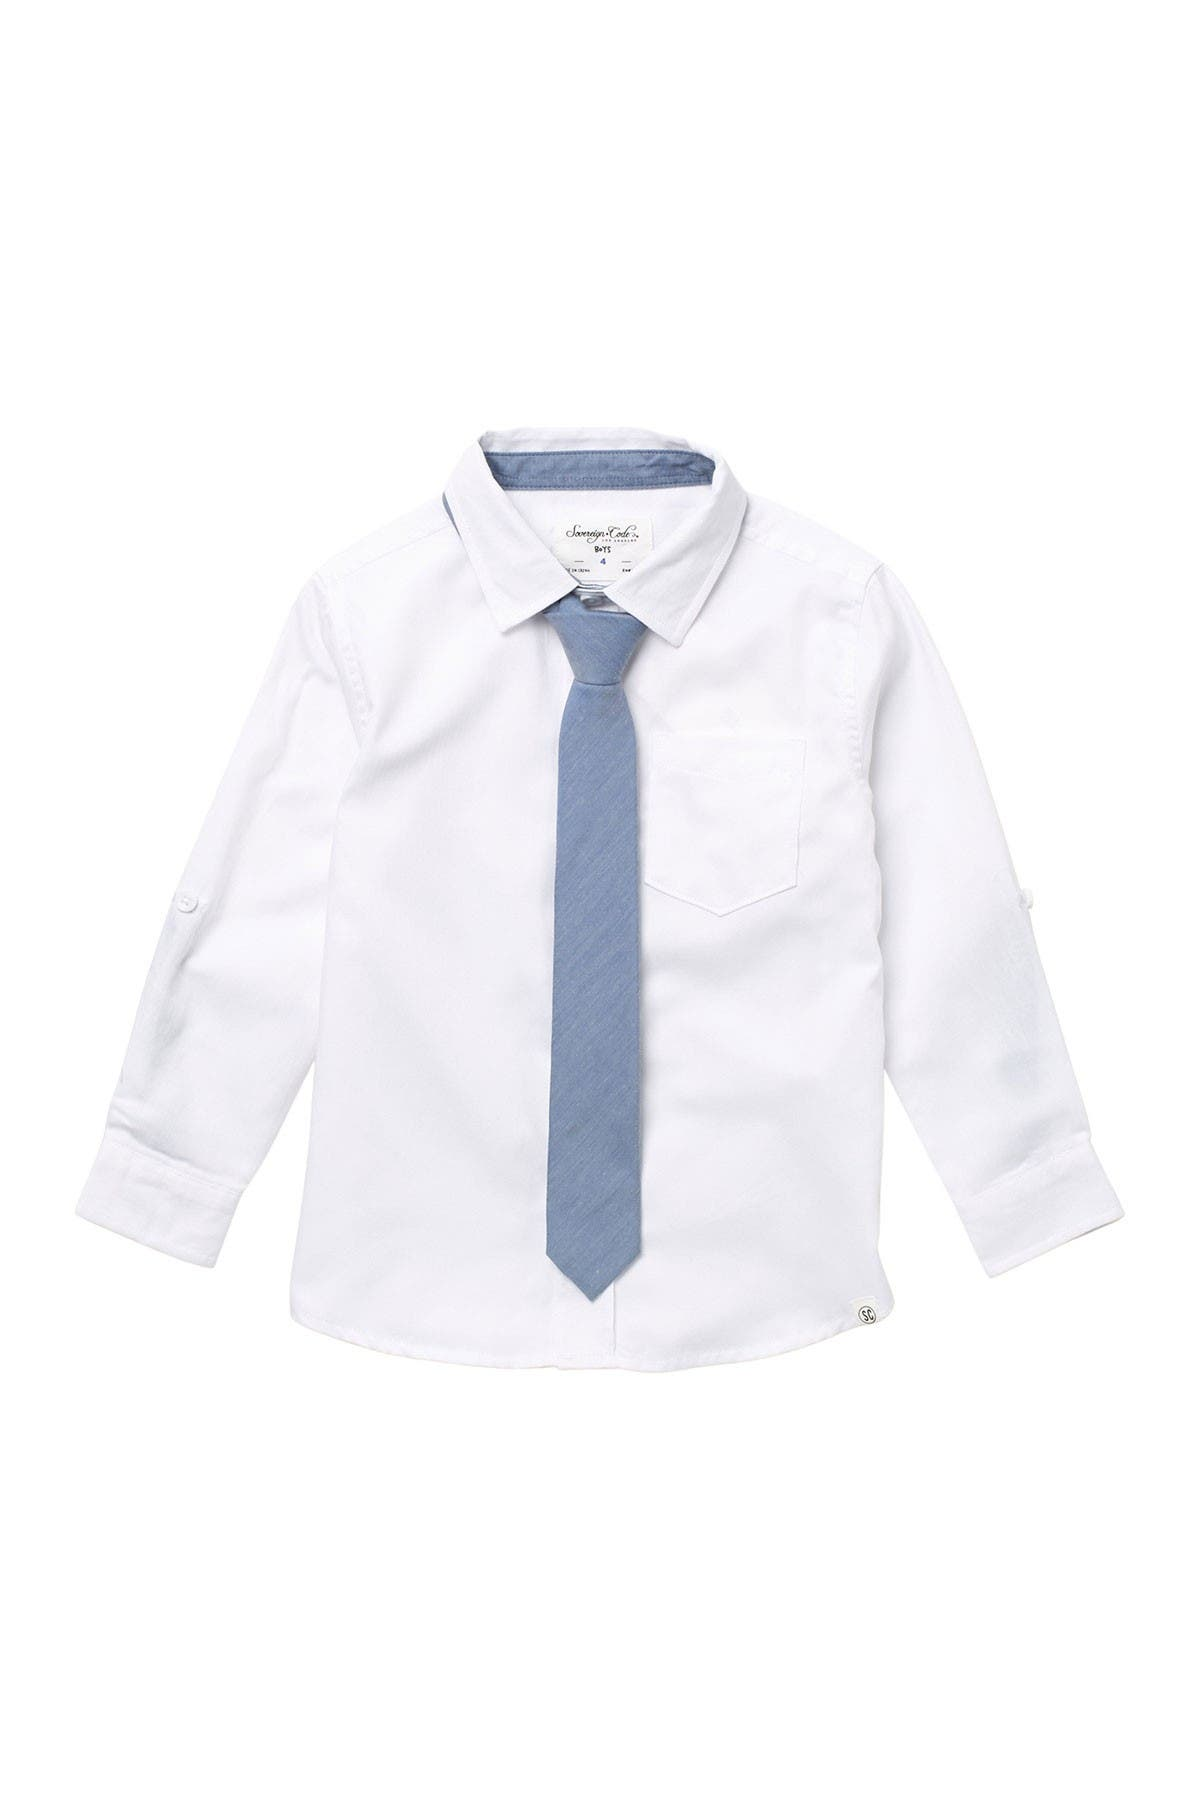 Image of Sovereign Code Shirt & Tie